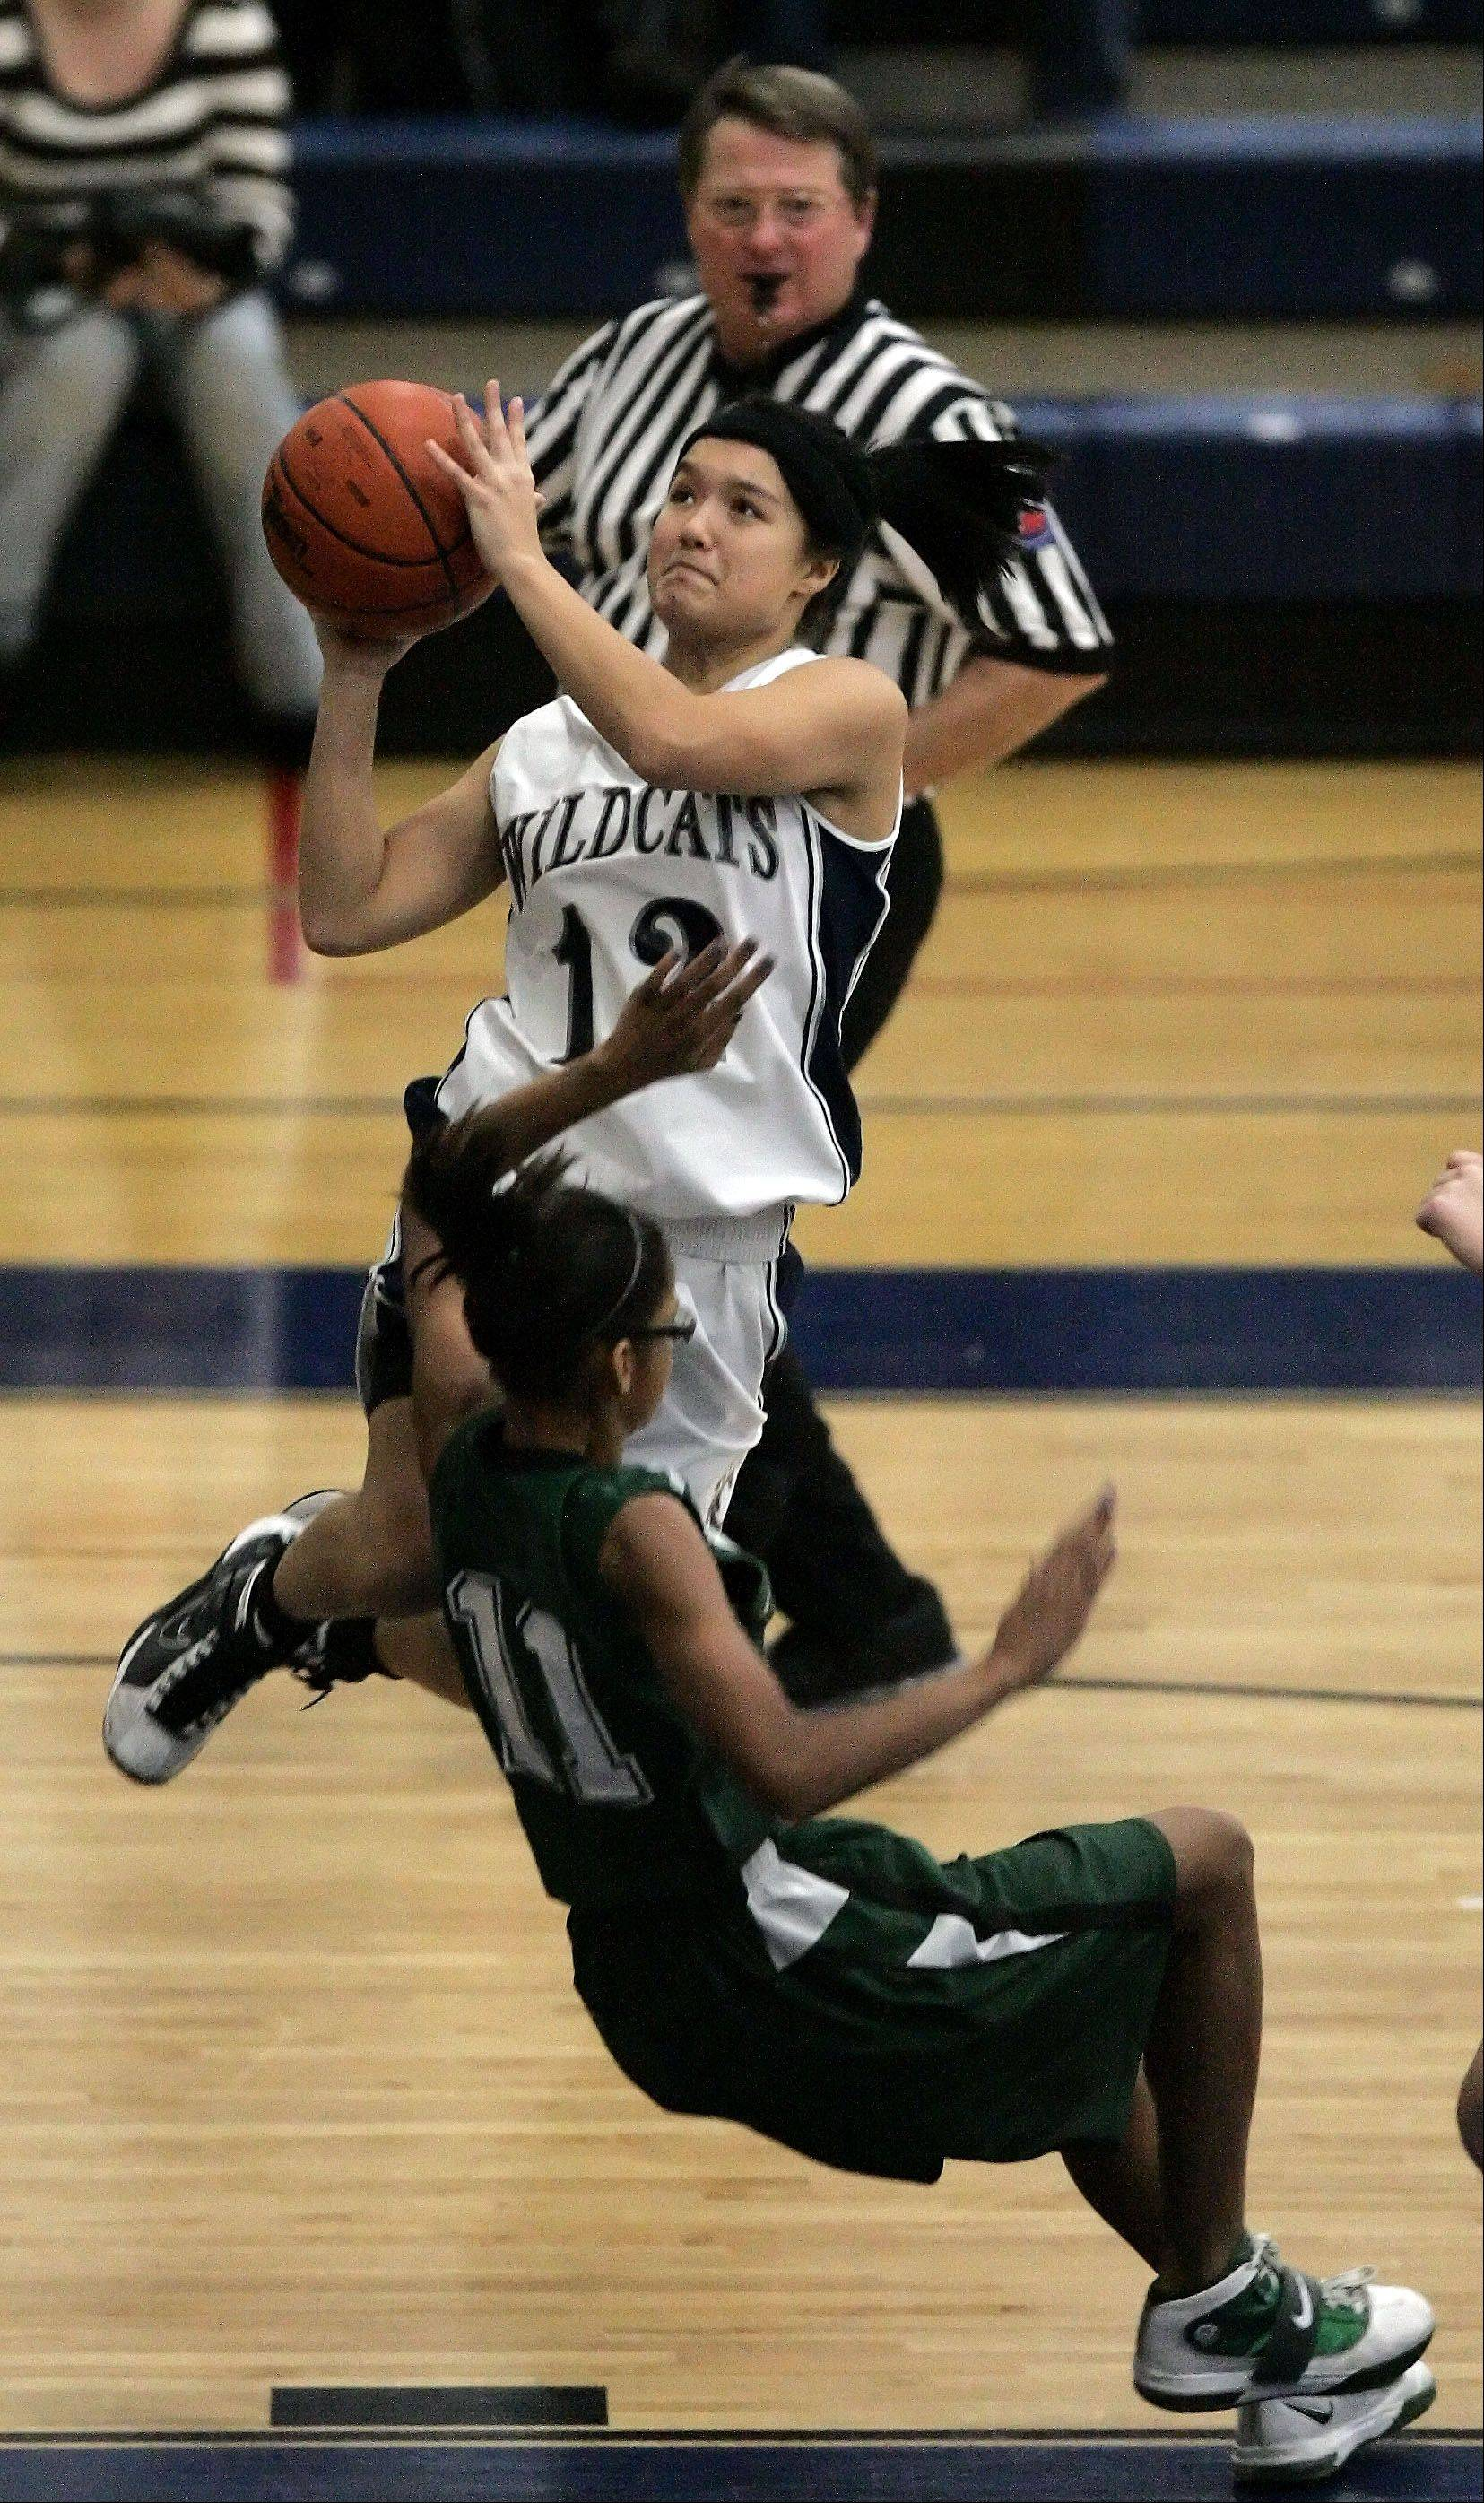 West Chicago's Liz Reyes, 12, goes to the hoop past Plainfield Central's Jessica Kudia, 11, at the 2011 Wolves Winter Classic Basketball Tournament in Oswego Wednesday.